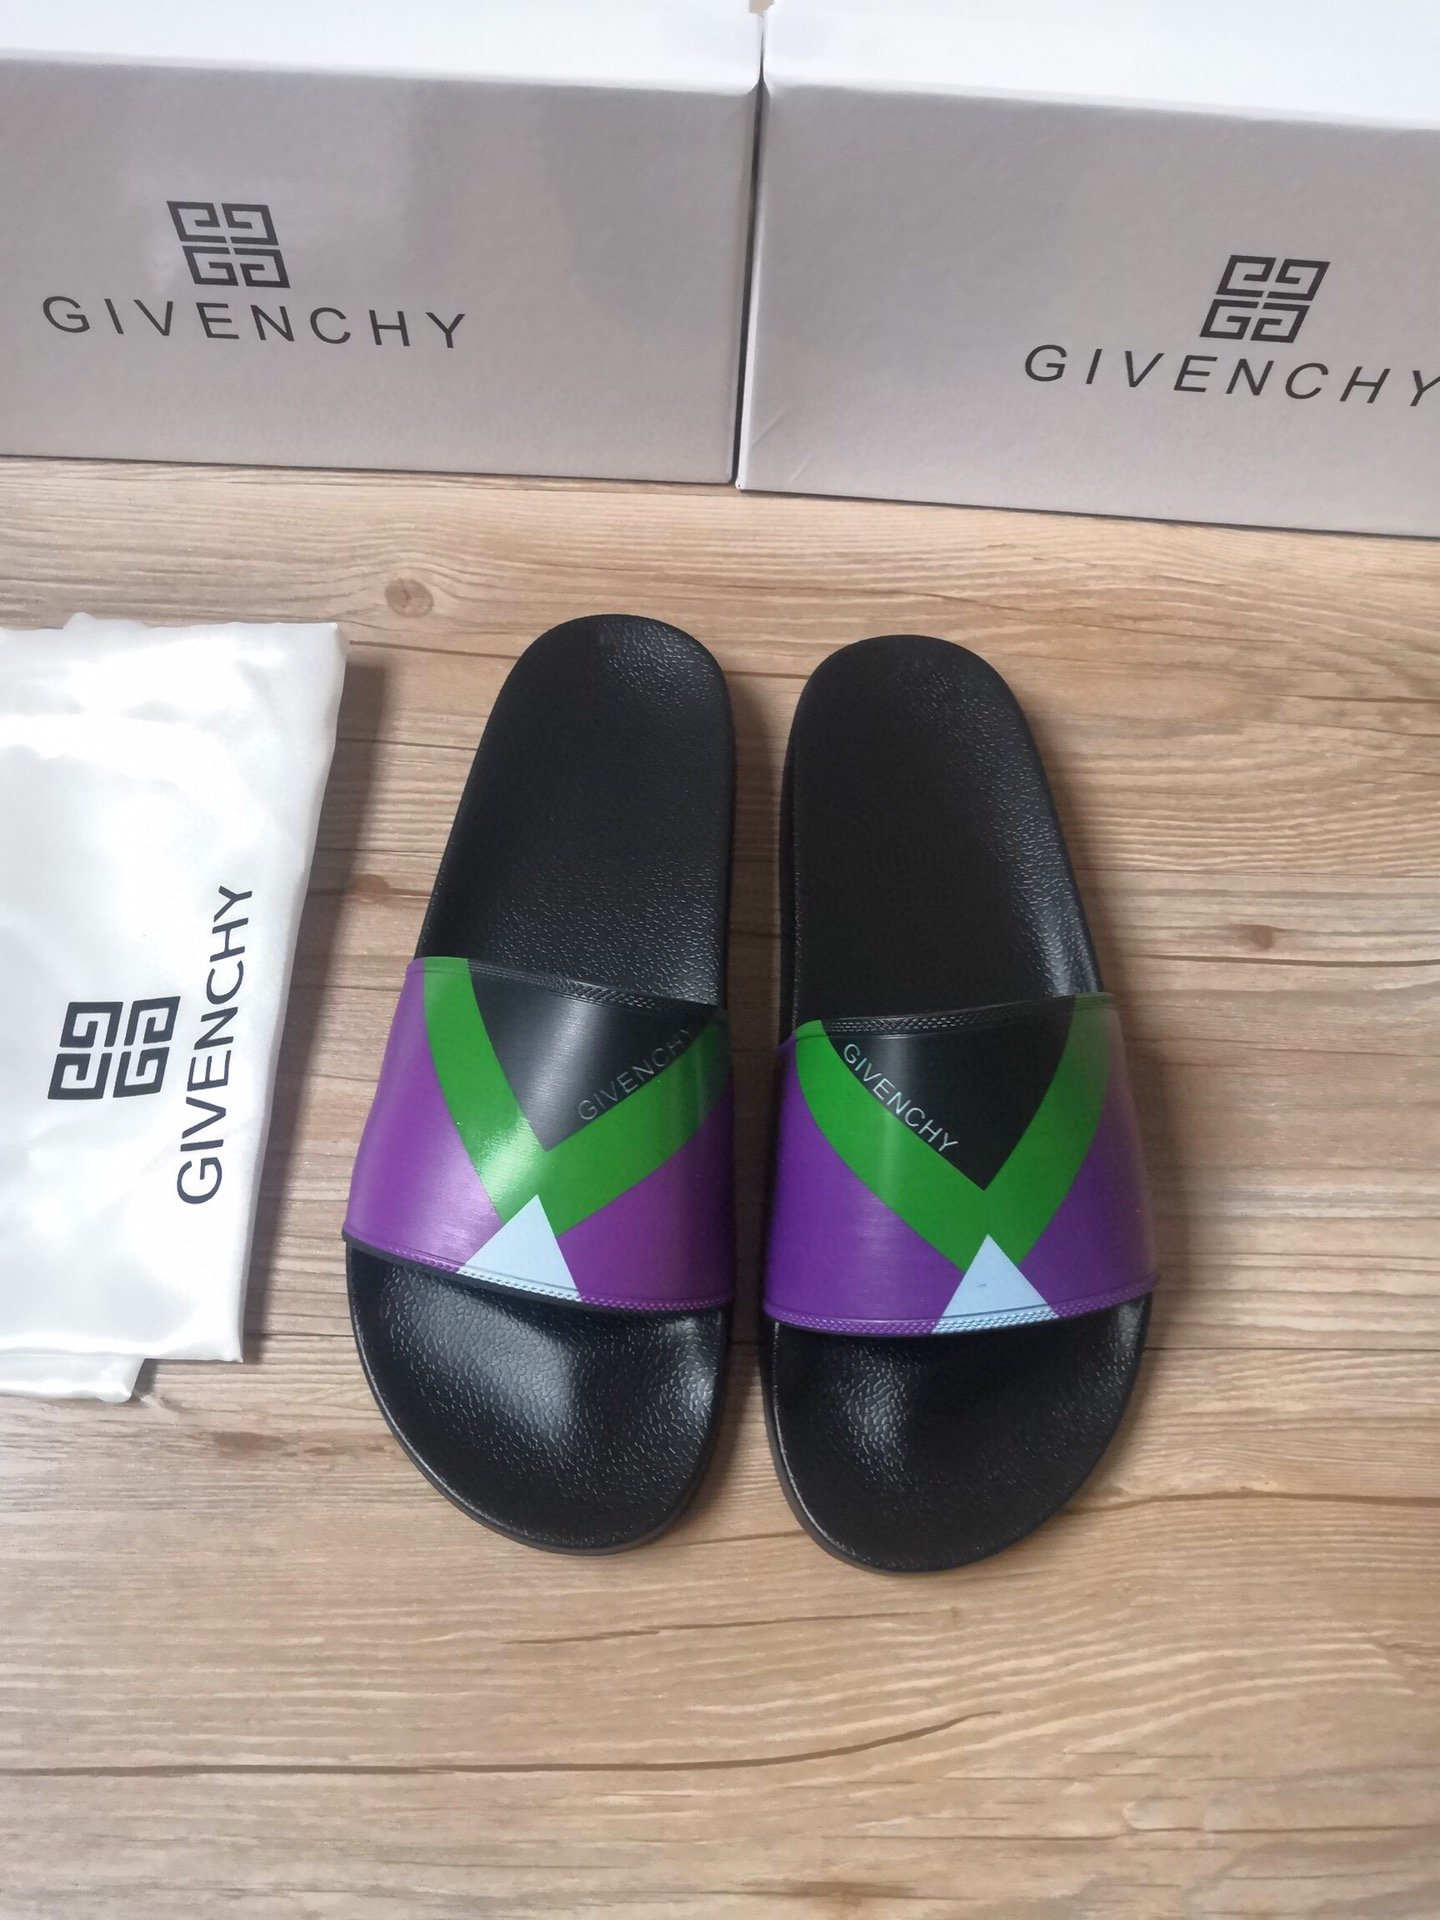 Givenchy Shoes-36